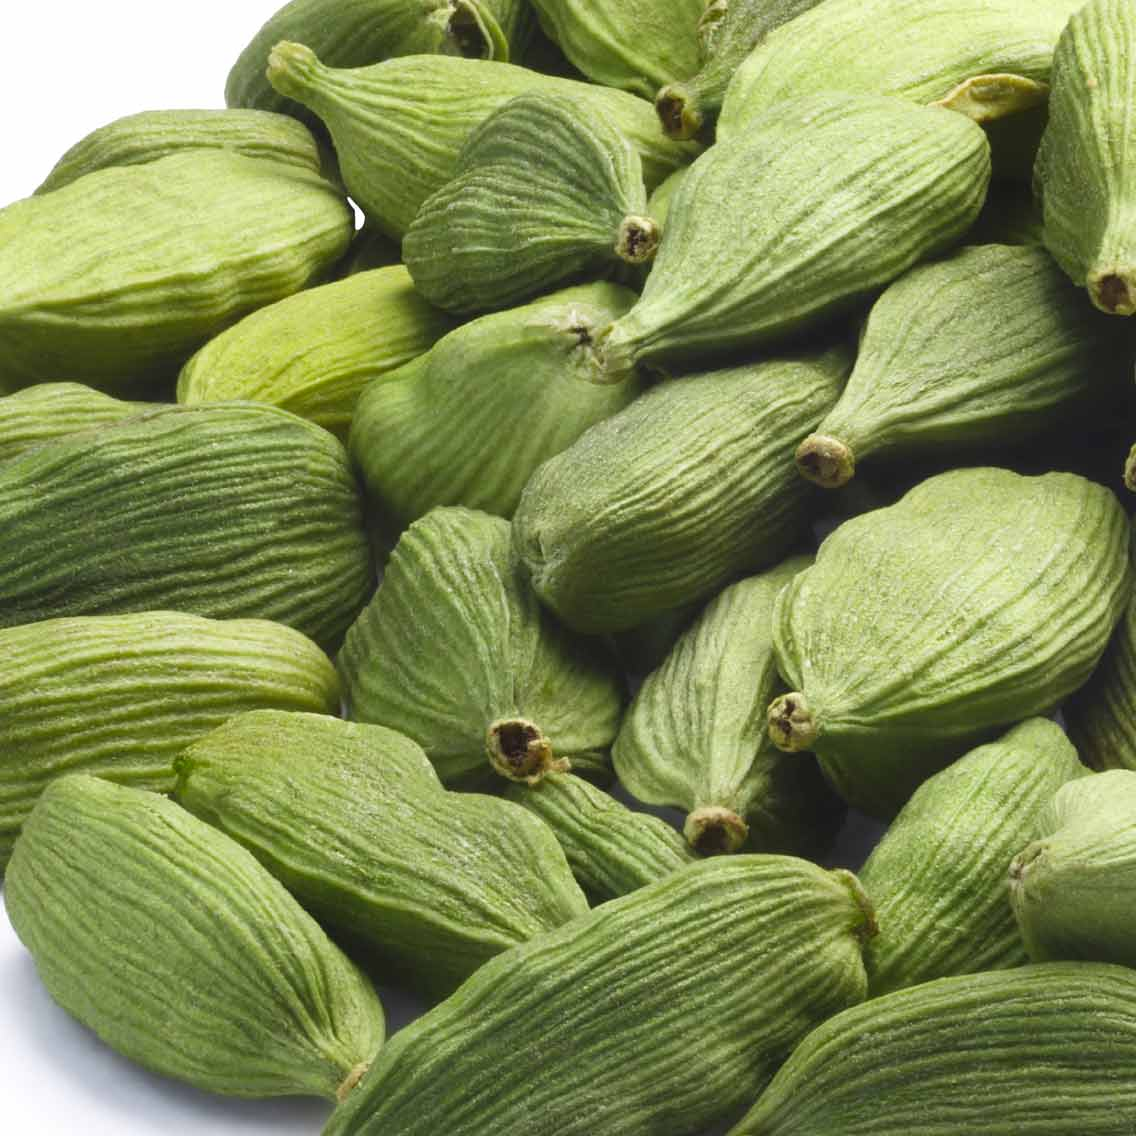 Quality Green Cardamom Wholesale from Top Supplier